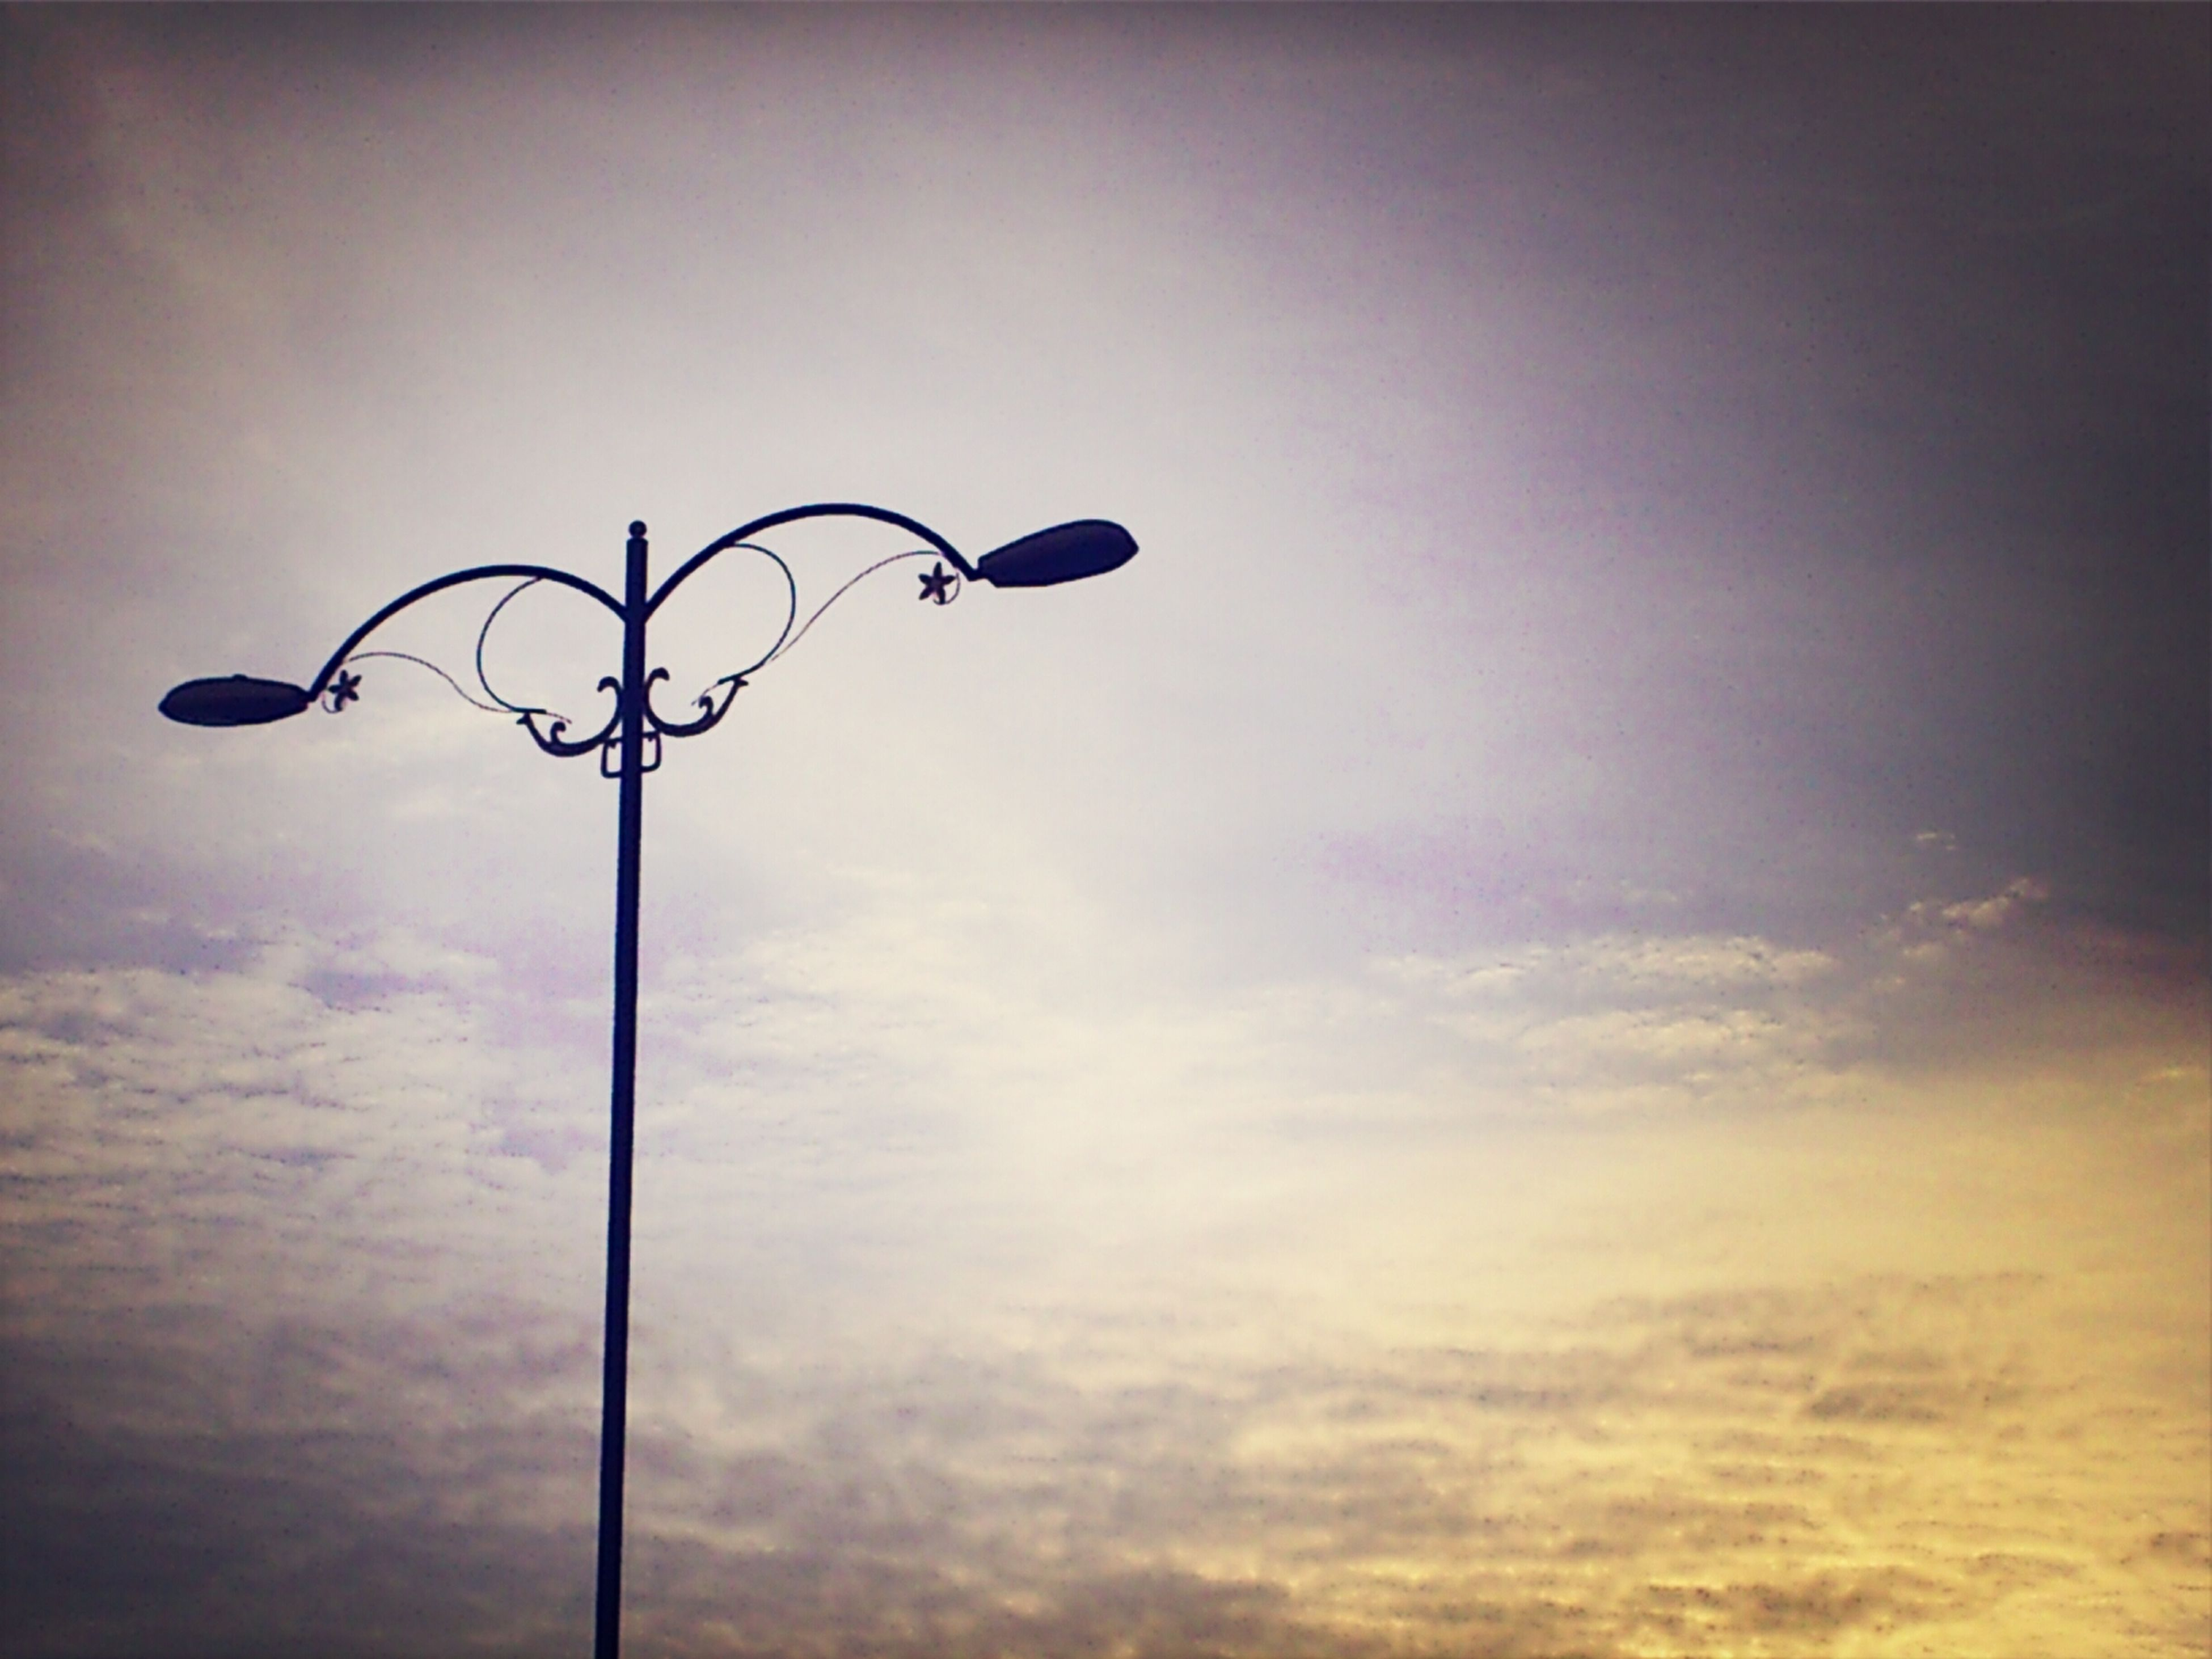 street light, low angle view, lighting equipment, sky, silhouette, pole, lamp post, cloud - sky, sunset, dusk, cloud, no people, electric light, electricity, outdoors, cloudy, copy space, nature, day, built structure